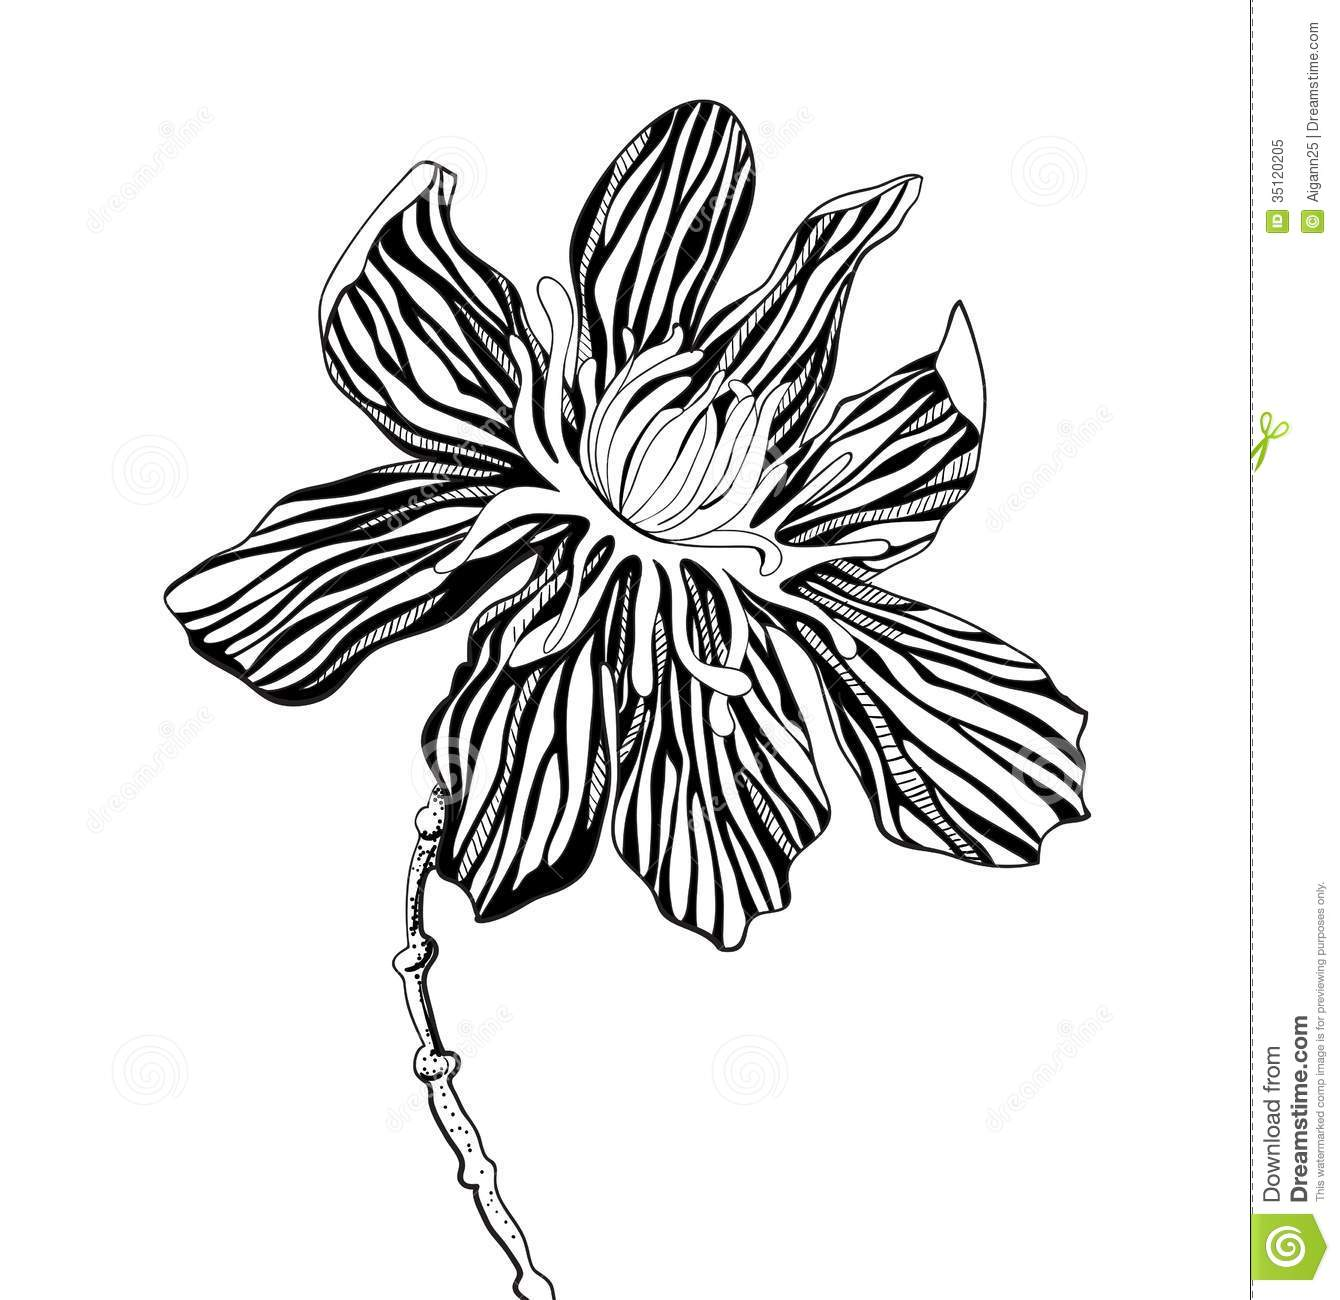 Graphic images of flowers graphic black and white Decorative Graphic Flowers Stock Photos - Image: 35120173 graphic black and white